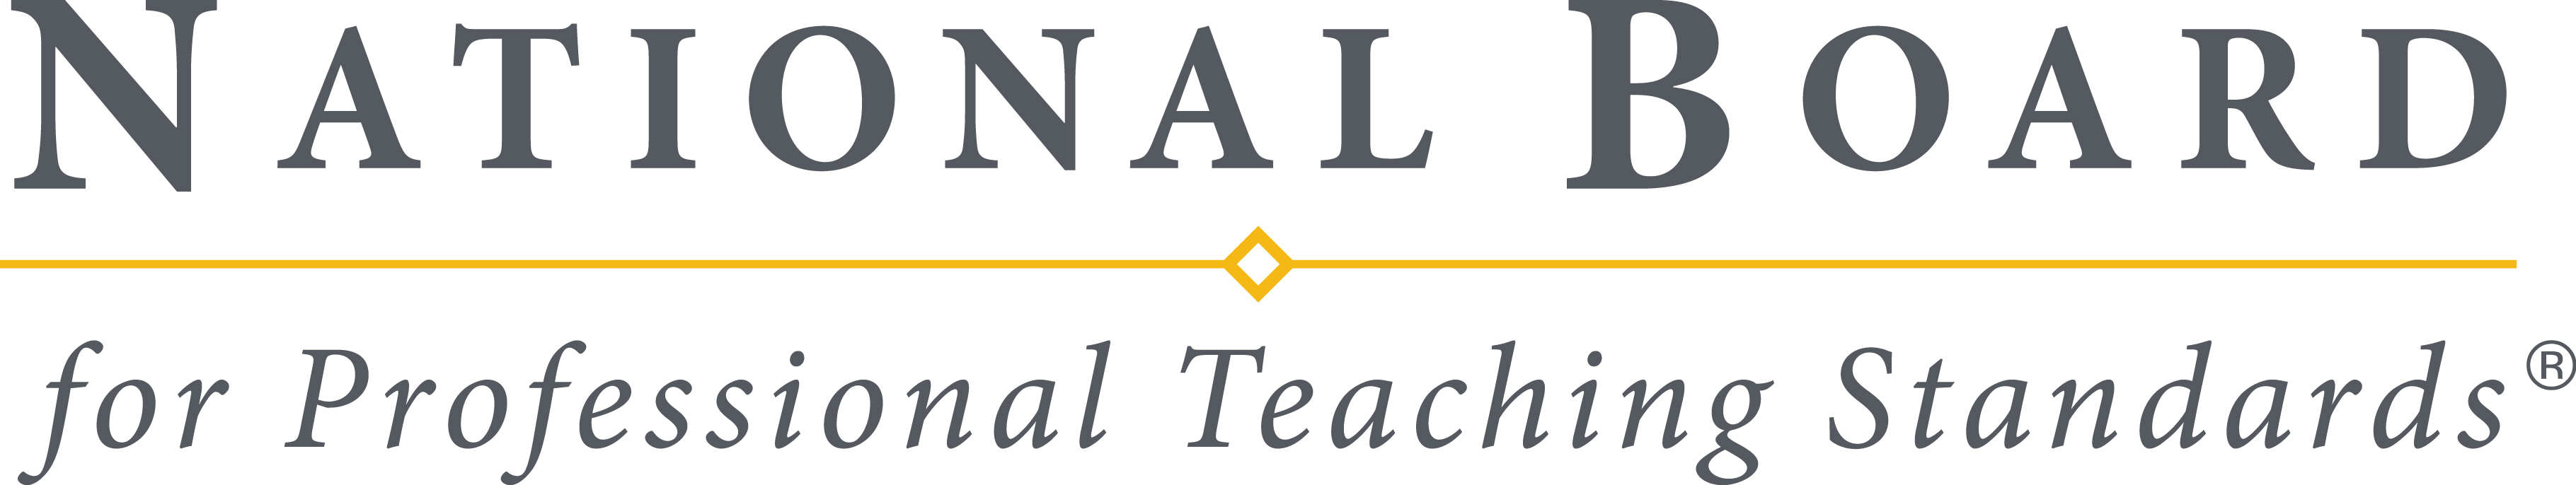 national guidelines for educating instructors Does the faculty selection process include specific hiring criteria that deliberately  search for candidates whose excellence in education, clinical practice or.